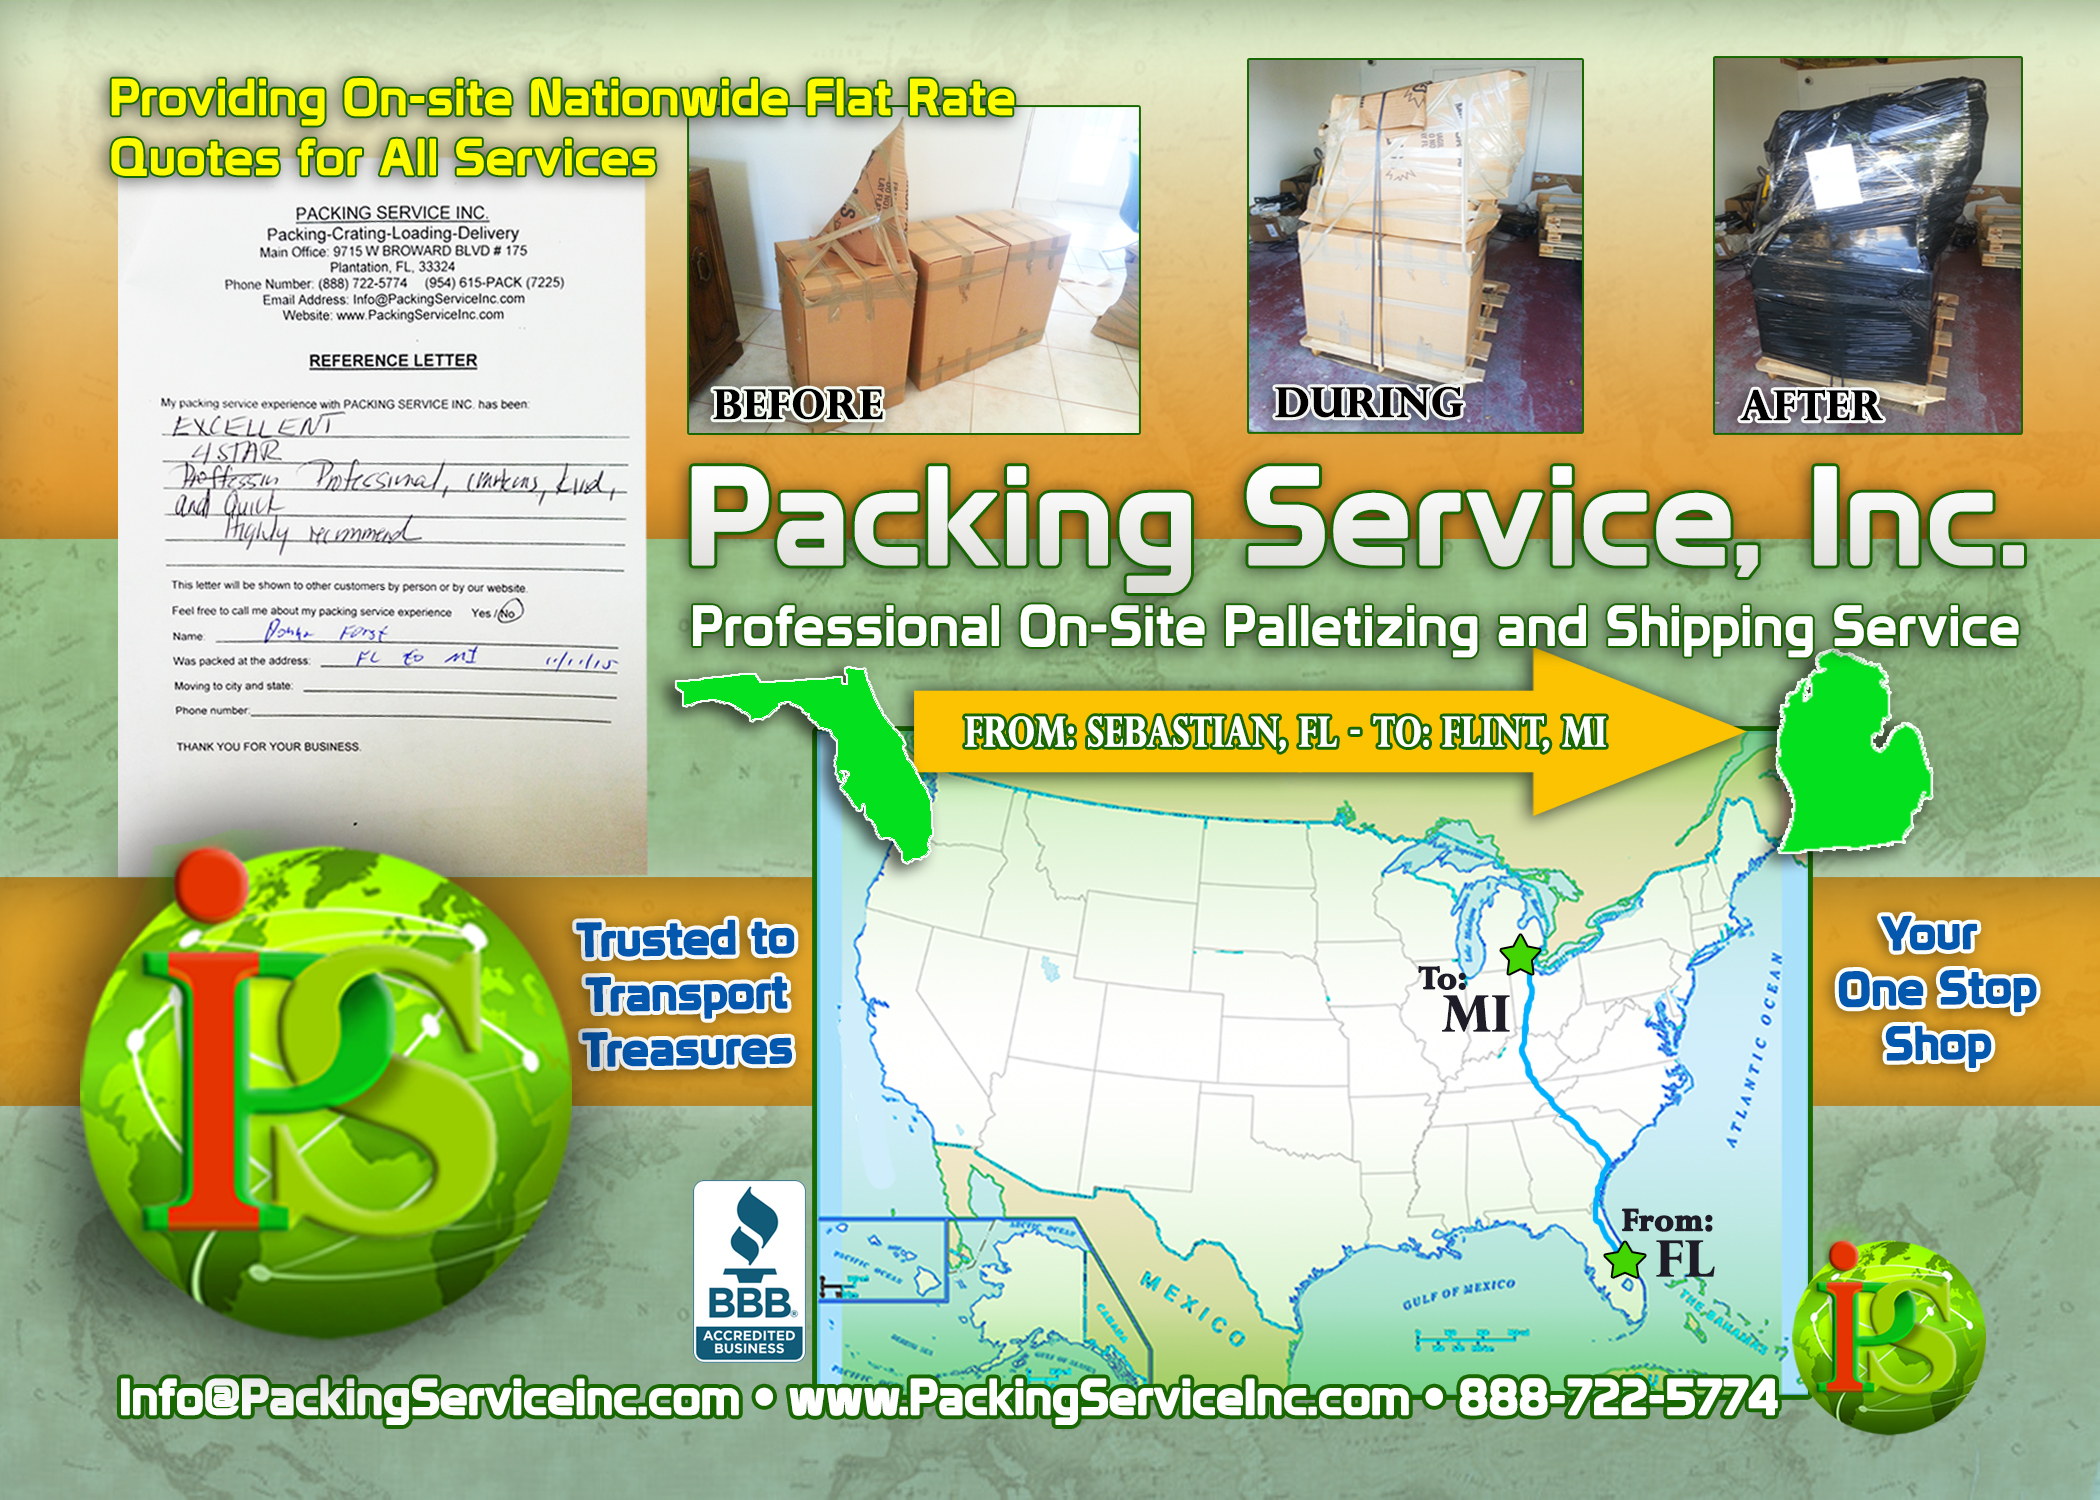 Packing Boxes, Palletizing and Shipping FL-MI with Packing Service, Inc. - 211